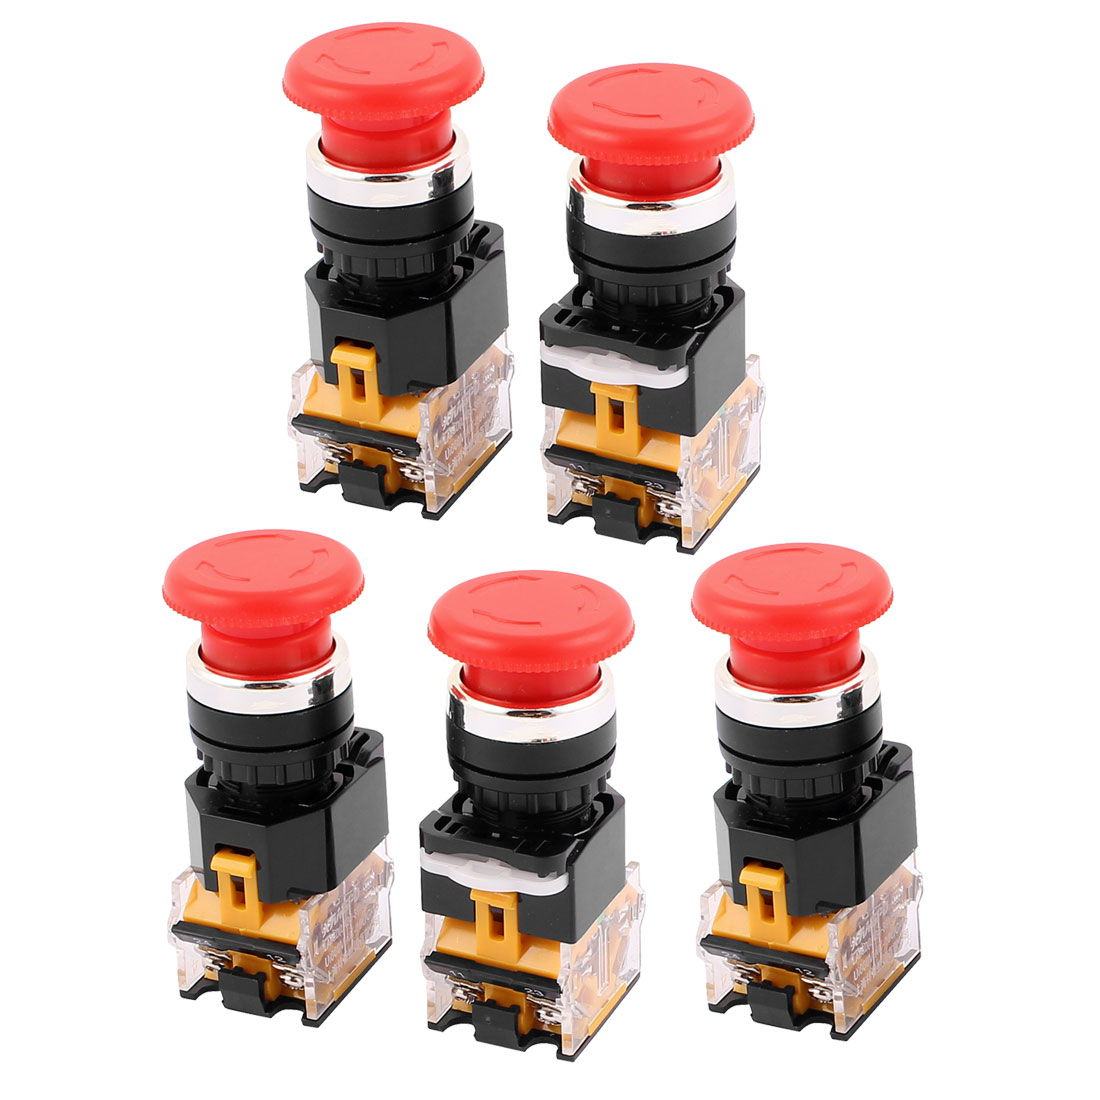 AC 660V 1NO 1NC DPST 4 Pin Latching Emergency Stop Push Button Switch 5Pcs